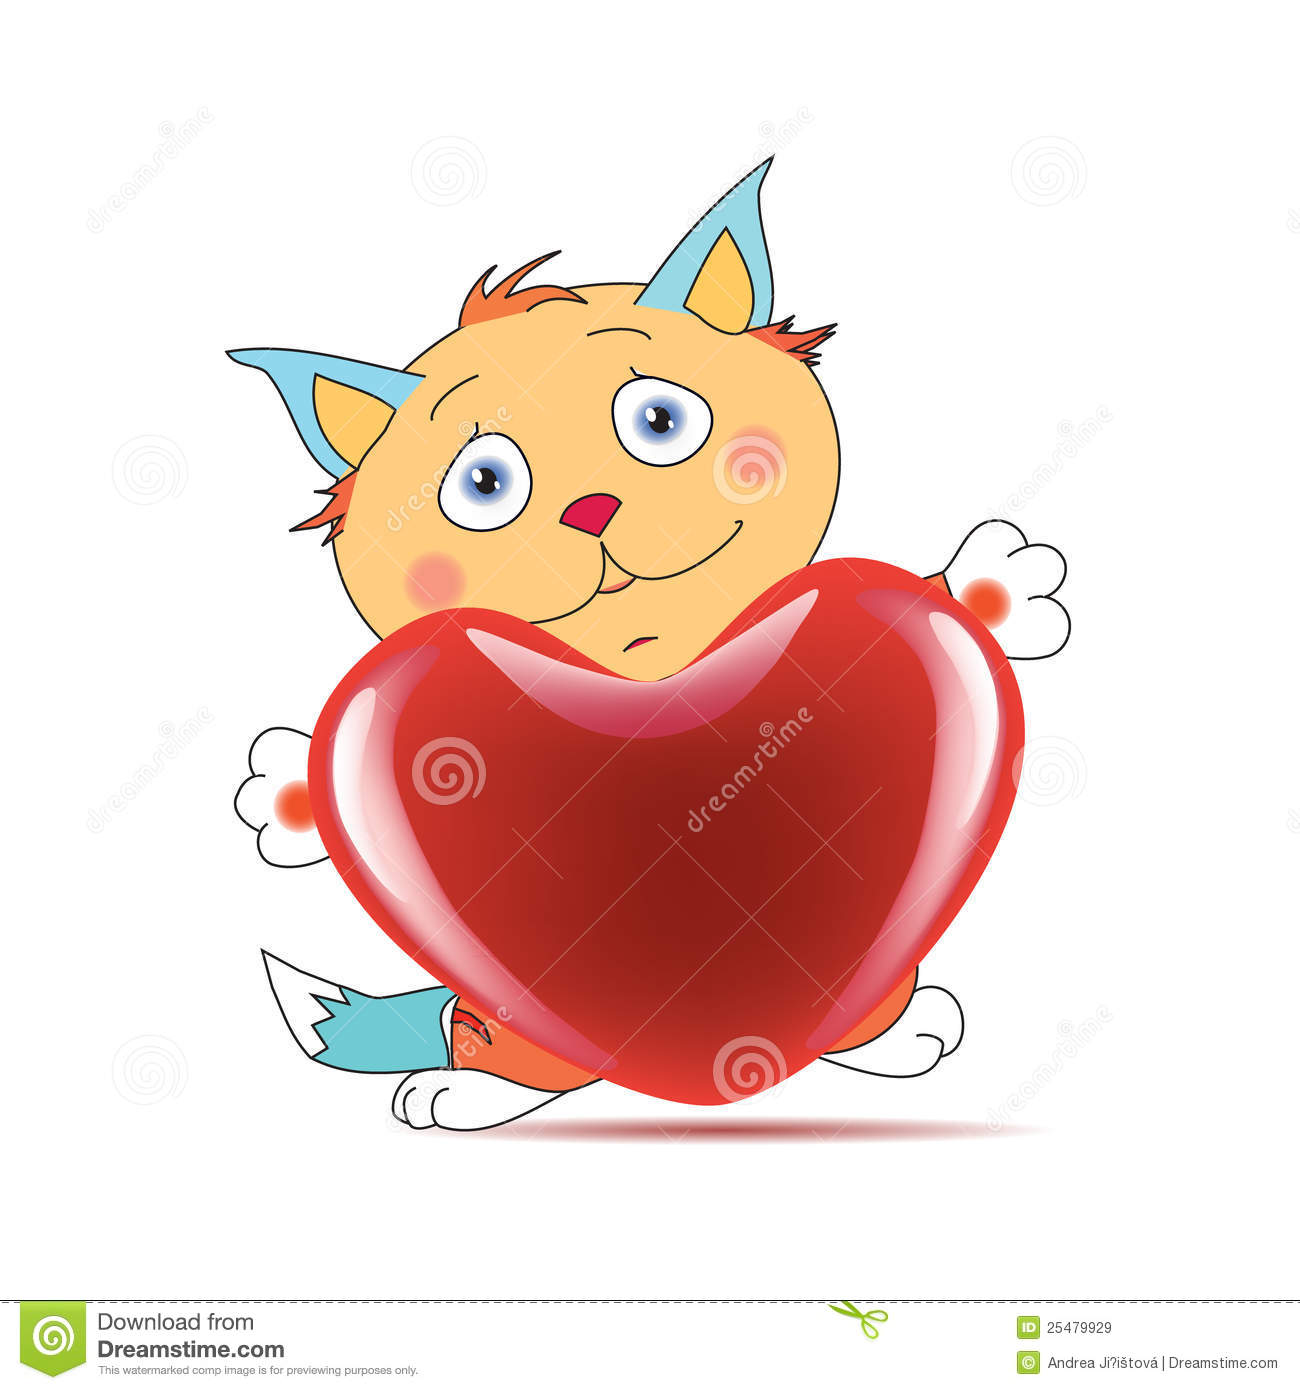 Tomcat In Love Royalty Free Stock Images.